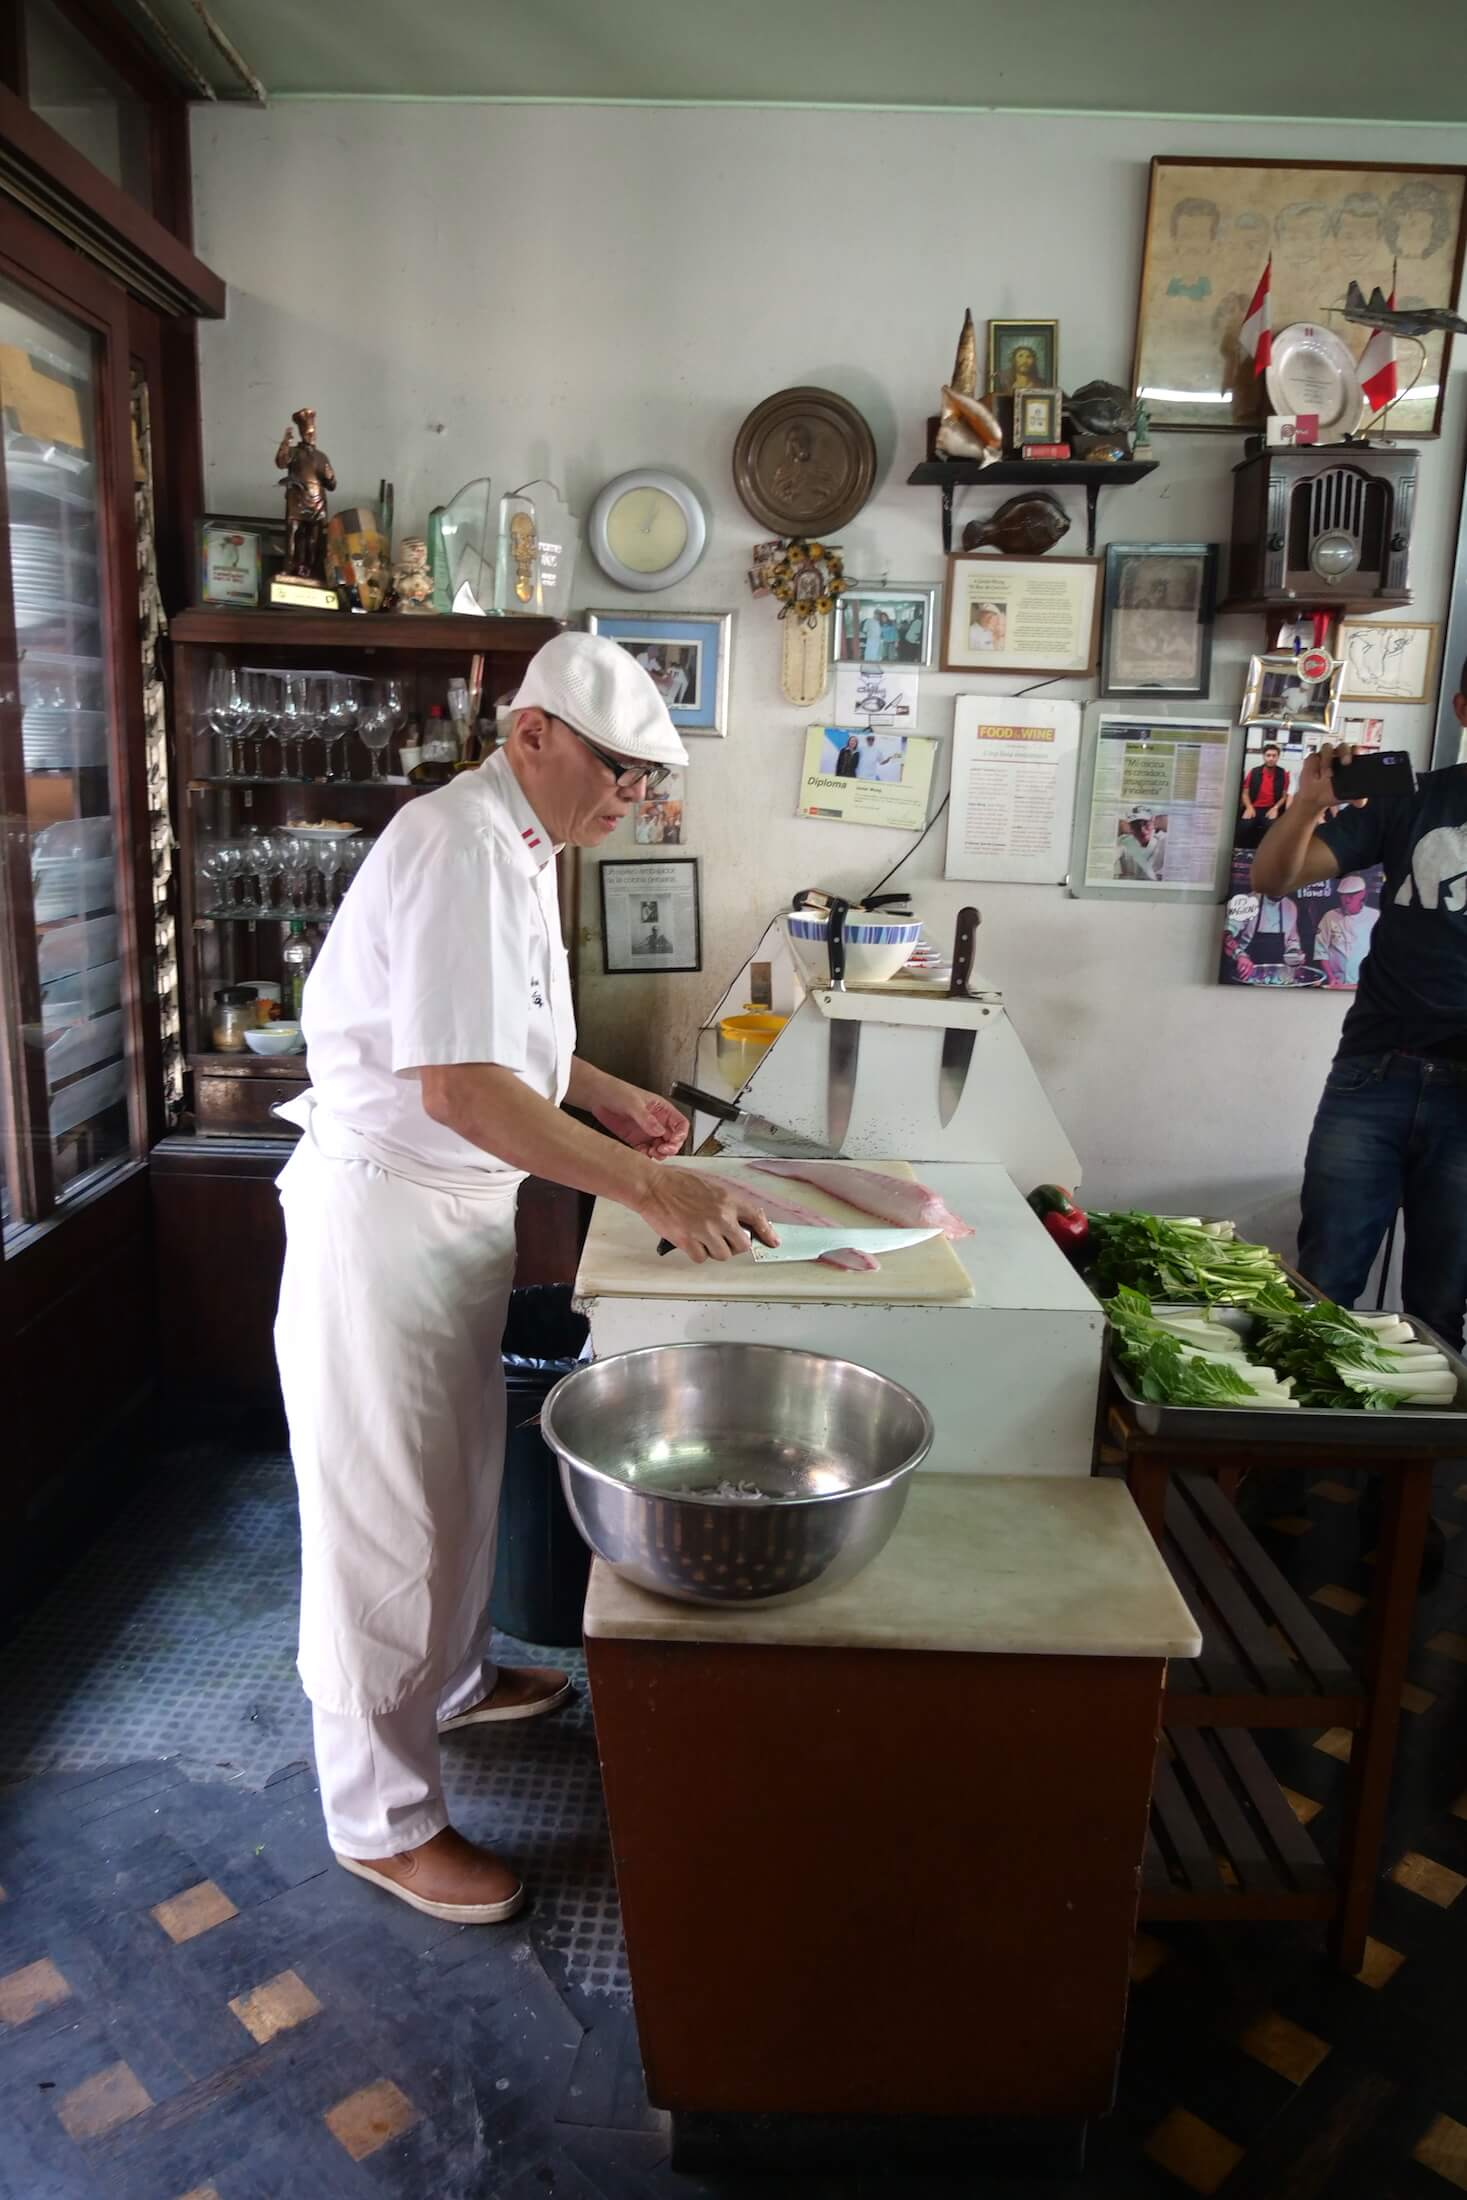 Amazing cooking, and a heart for the cuisine of Peru